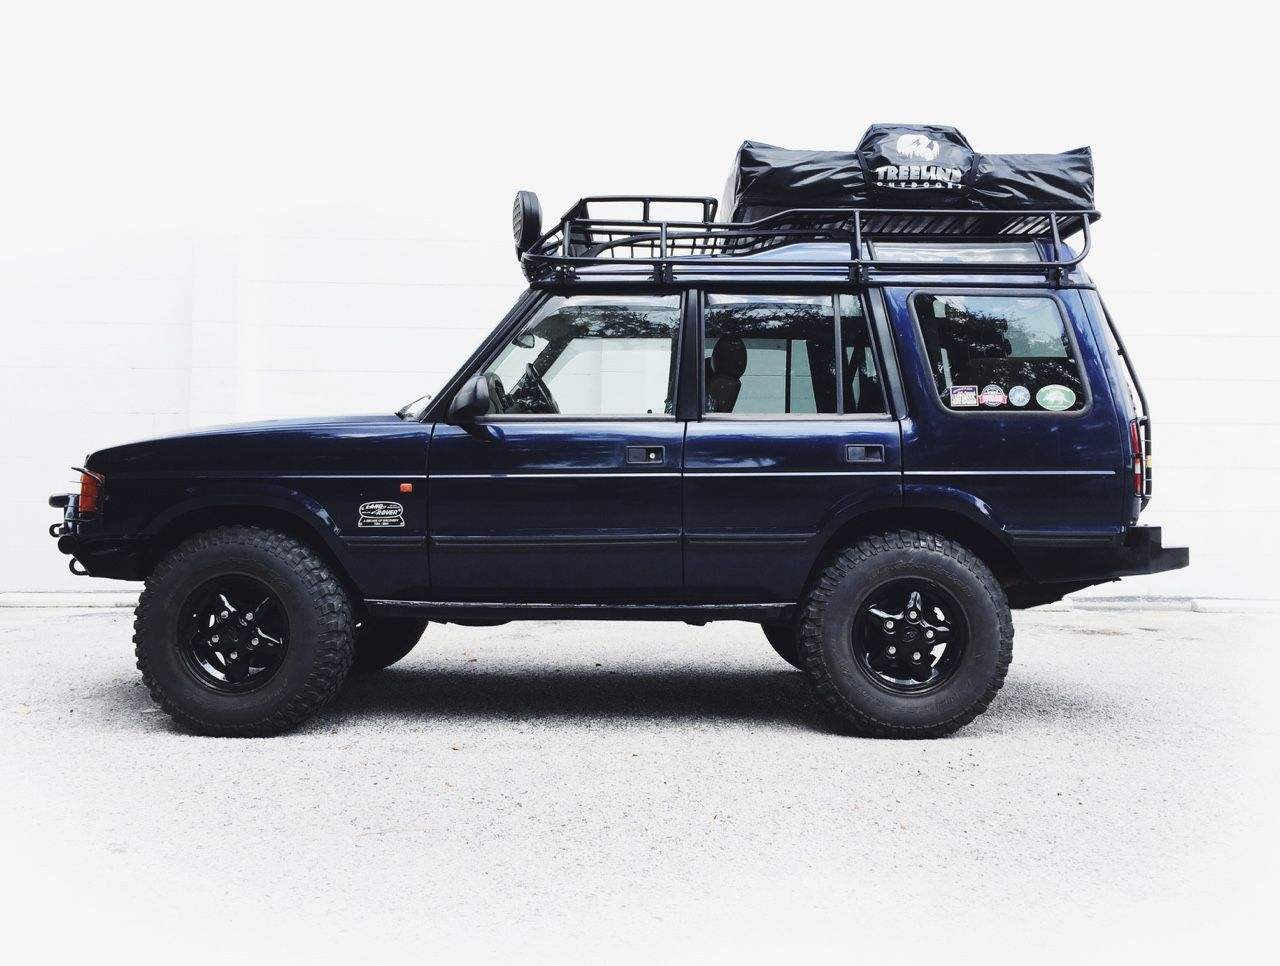 Overlandempire The Overland Empire 1999 Land Rover